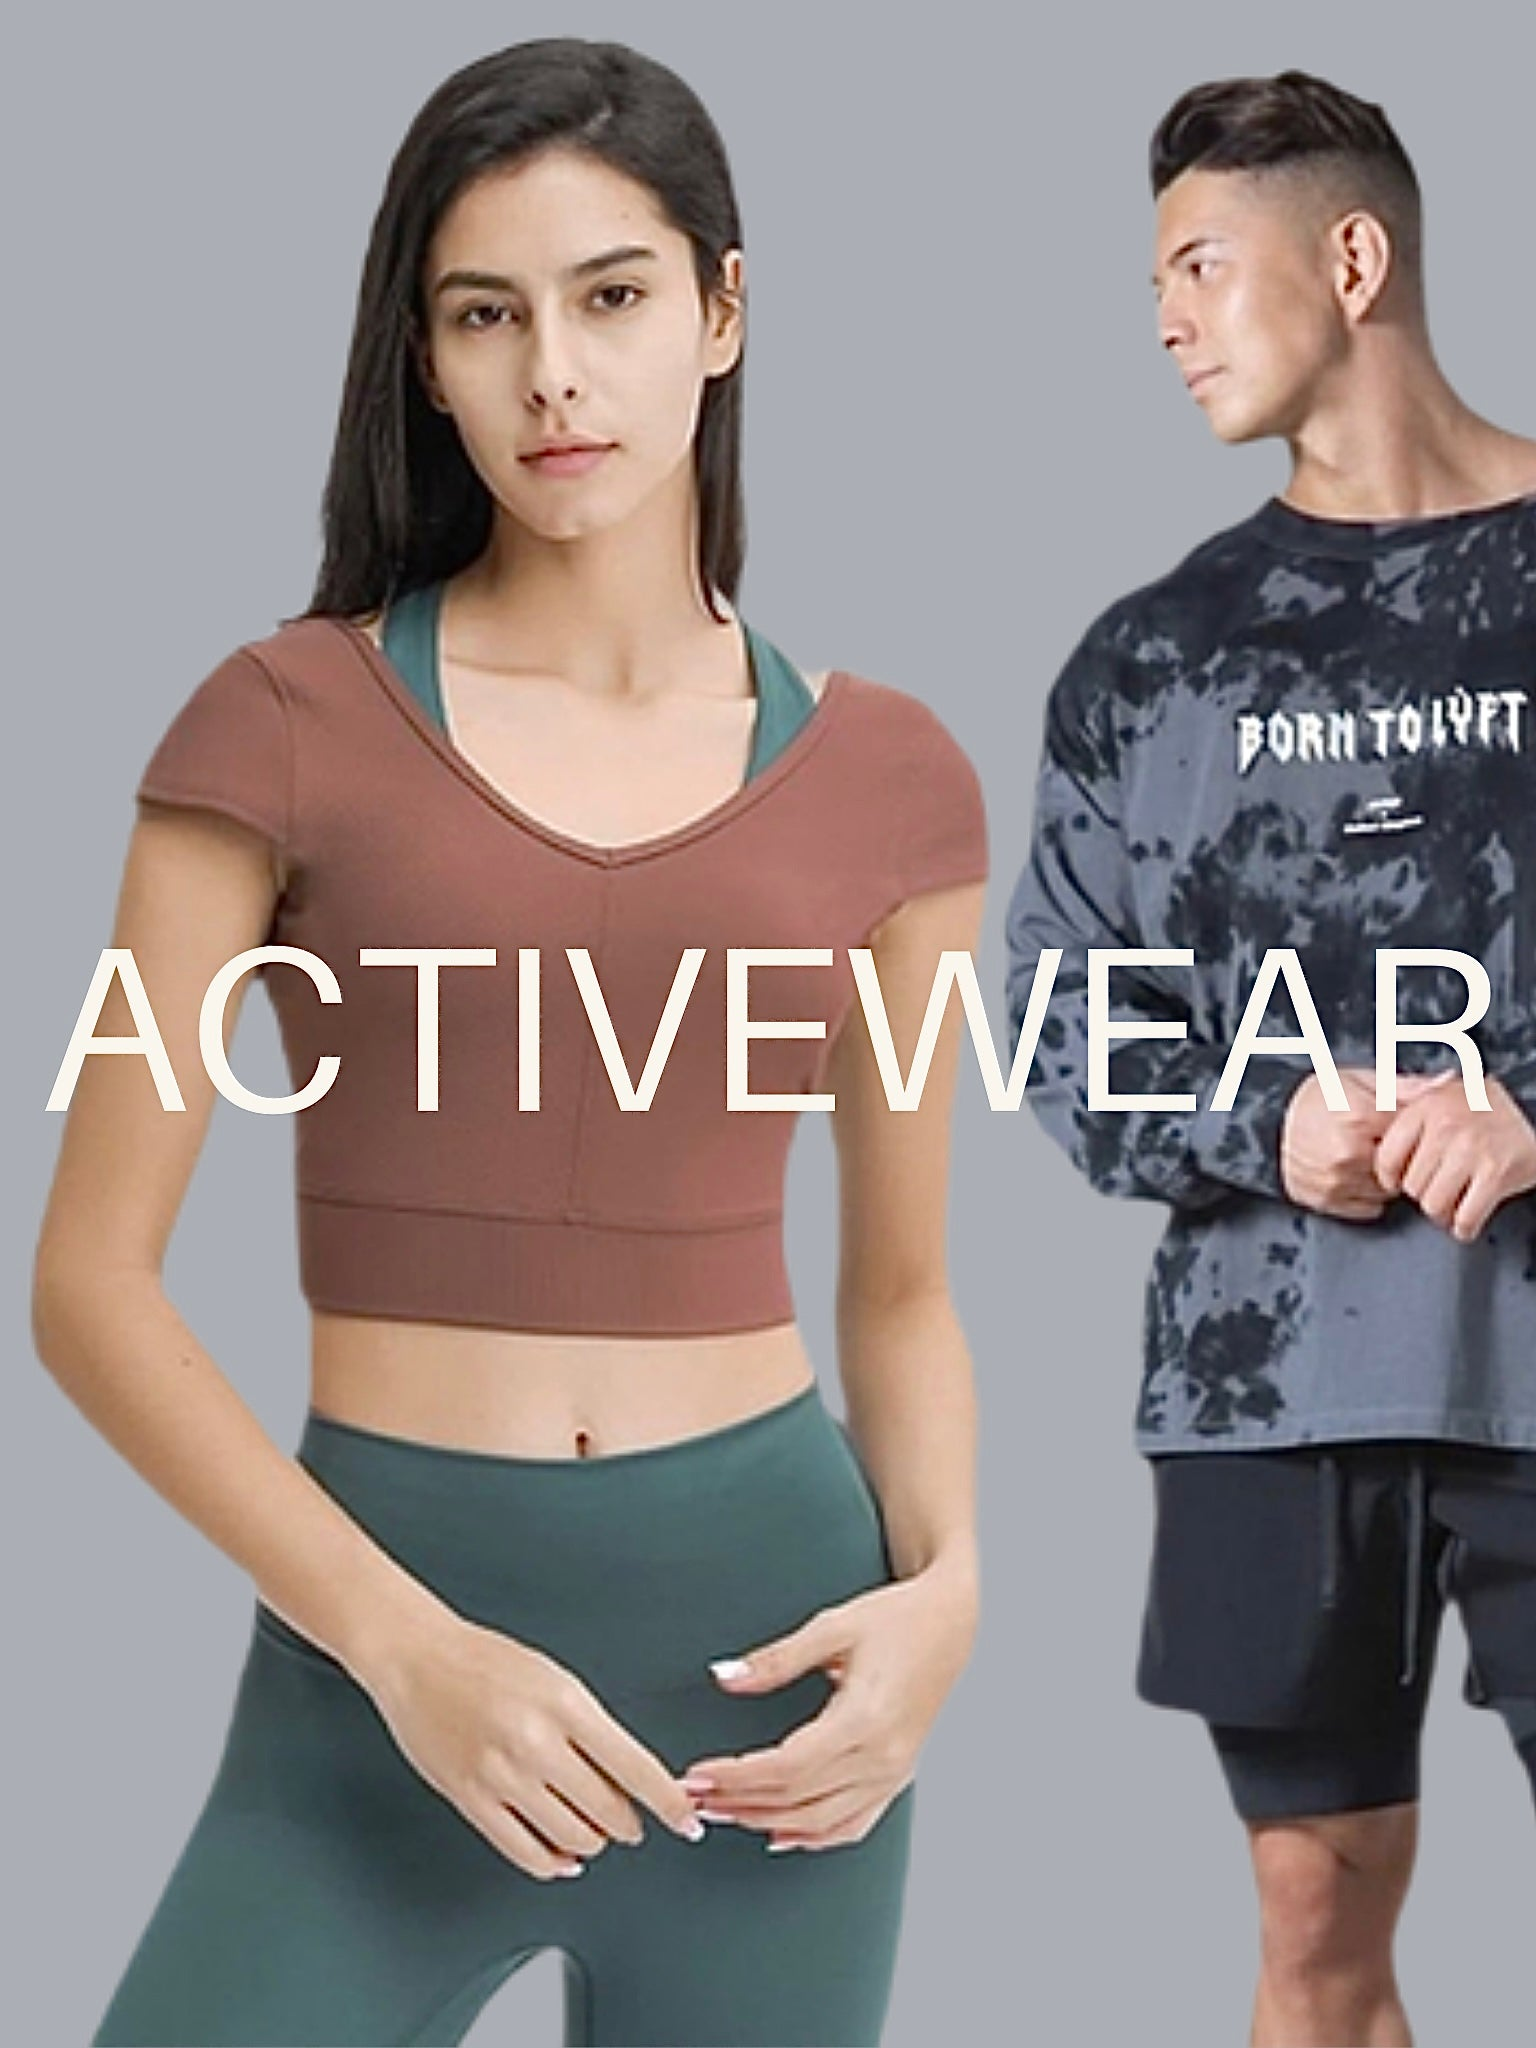 miTeigi | miFit Activewear and Sports Yoga Equipment | Japanese Apparel and Home Decor Retail Shopping